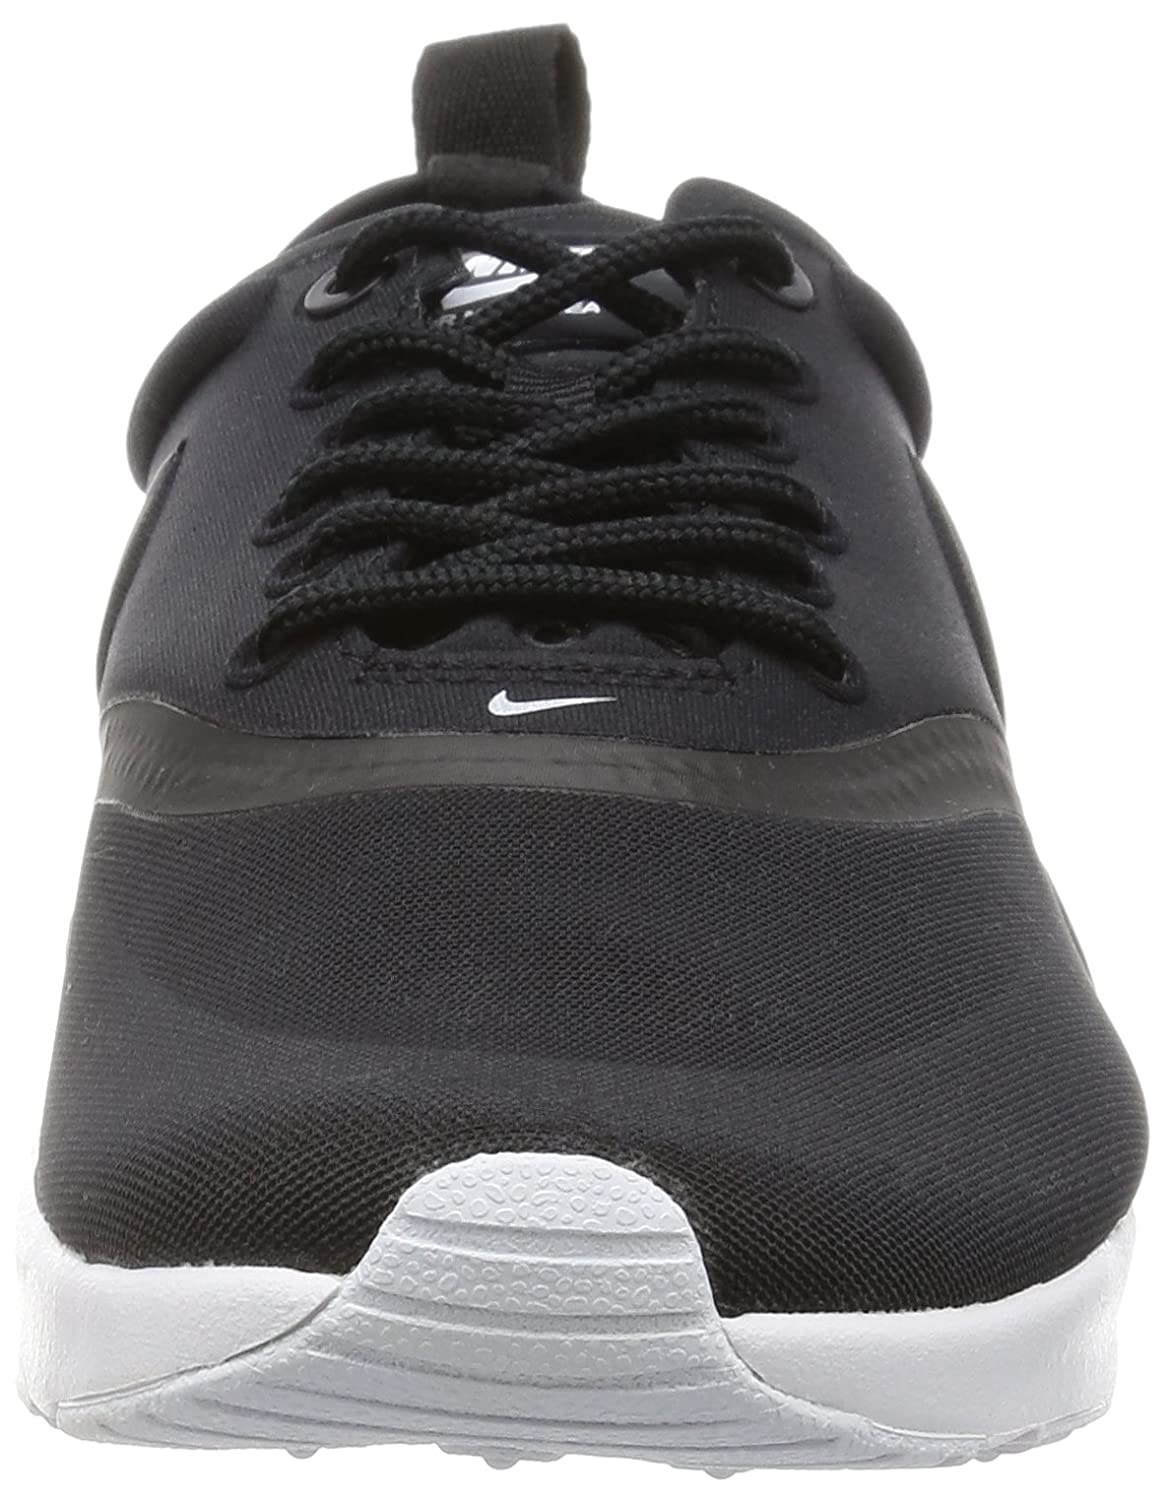 Details about Wmns Nike Air Max Thea Ultra 844926 001 Running Shoes Casual Trainers